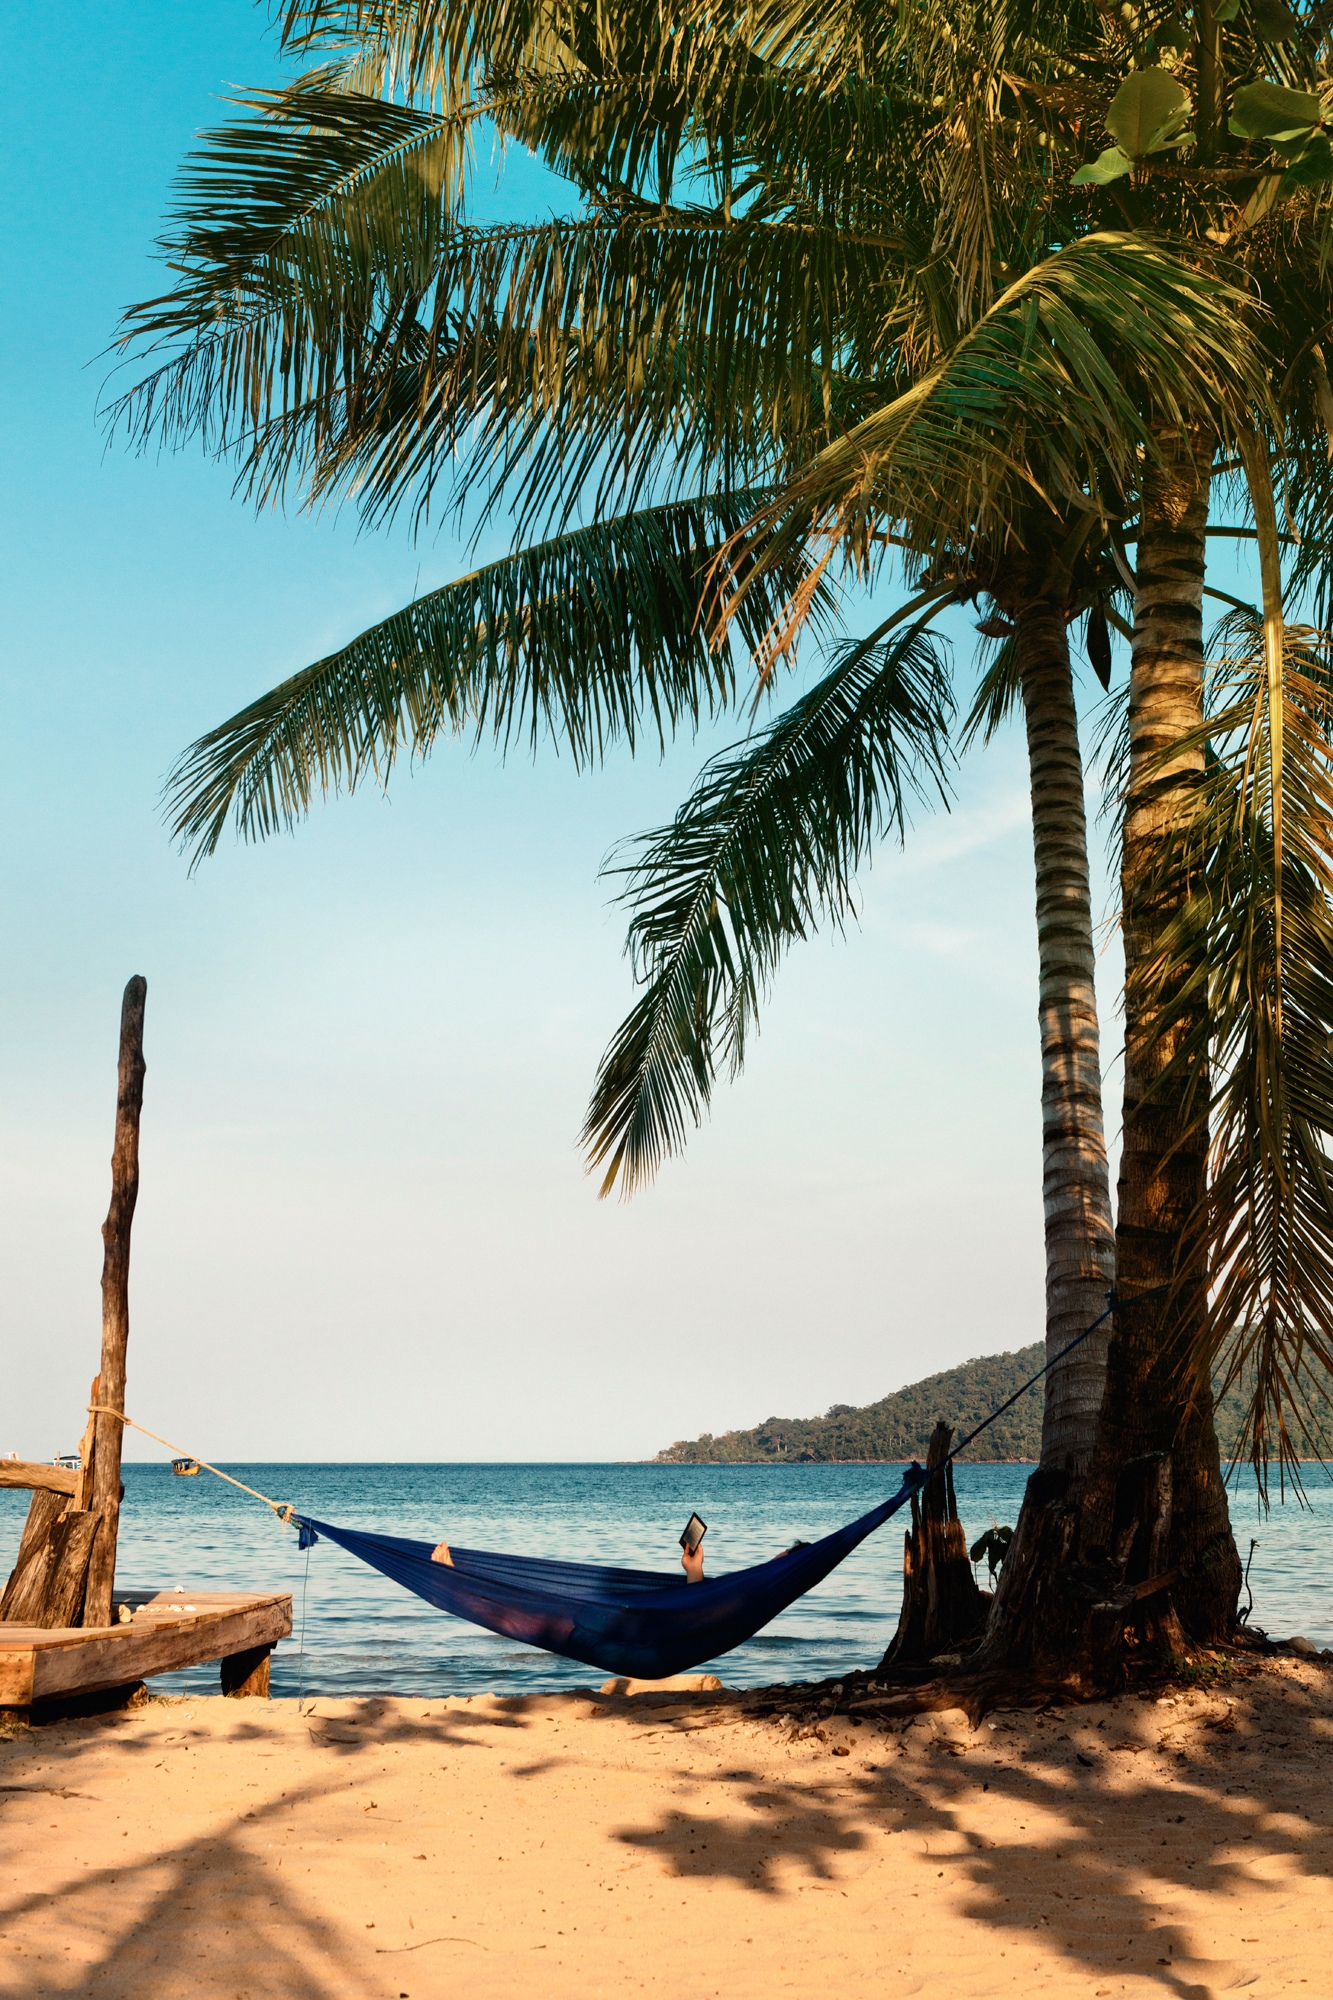 Relaxing in a hammock with a book at the beach.